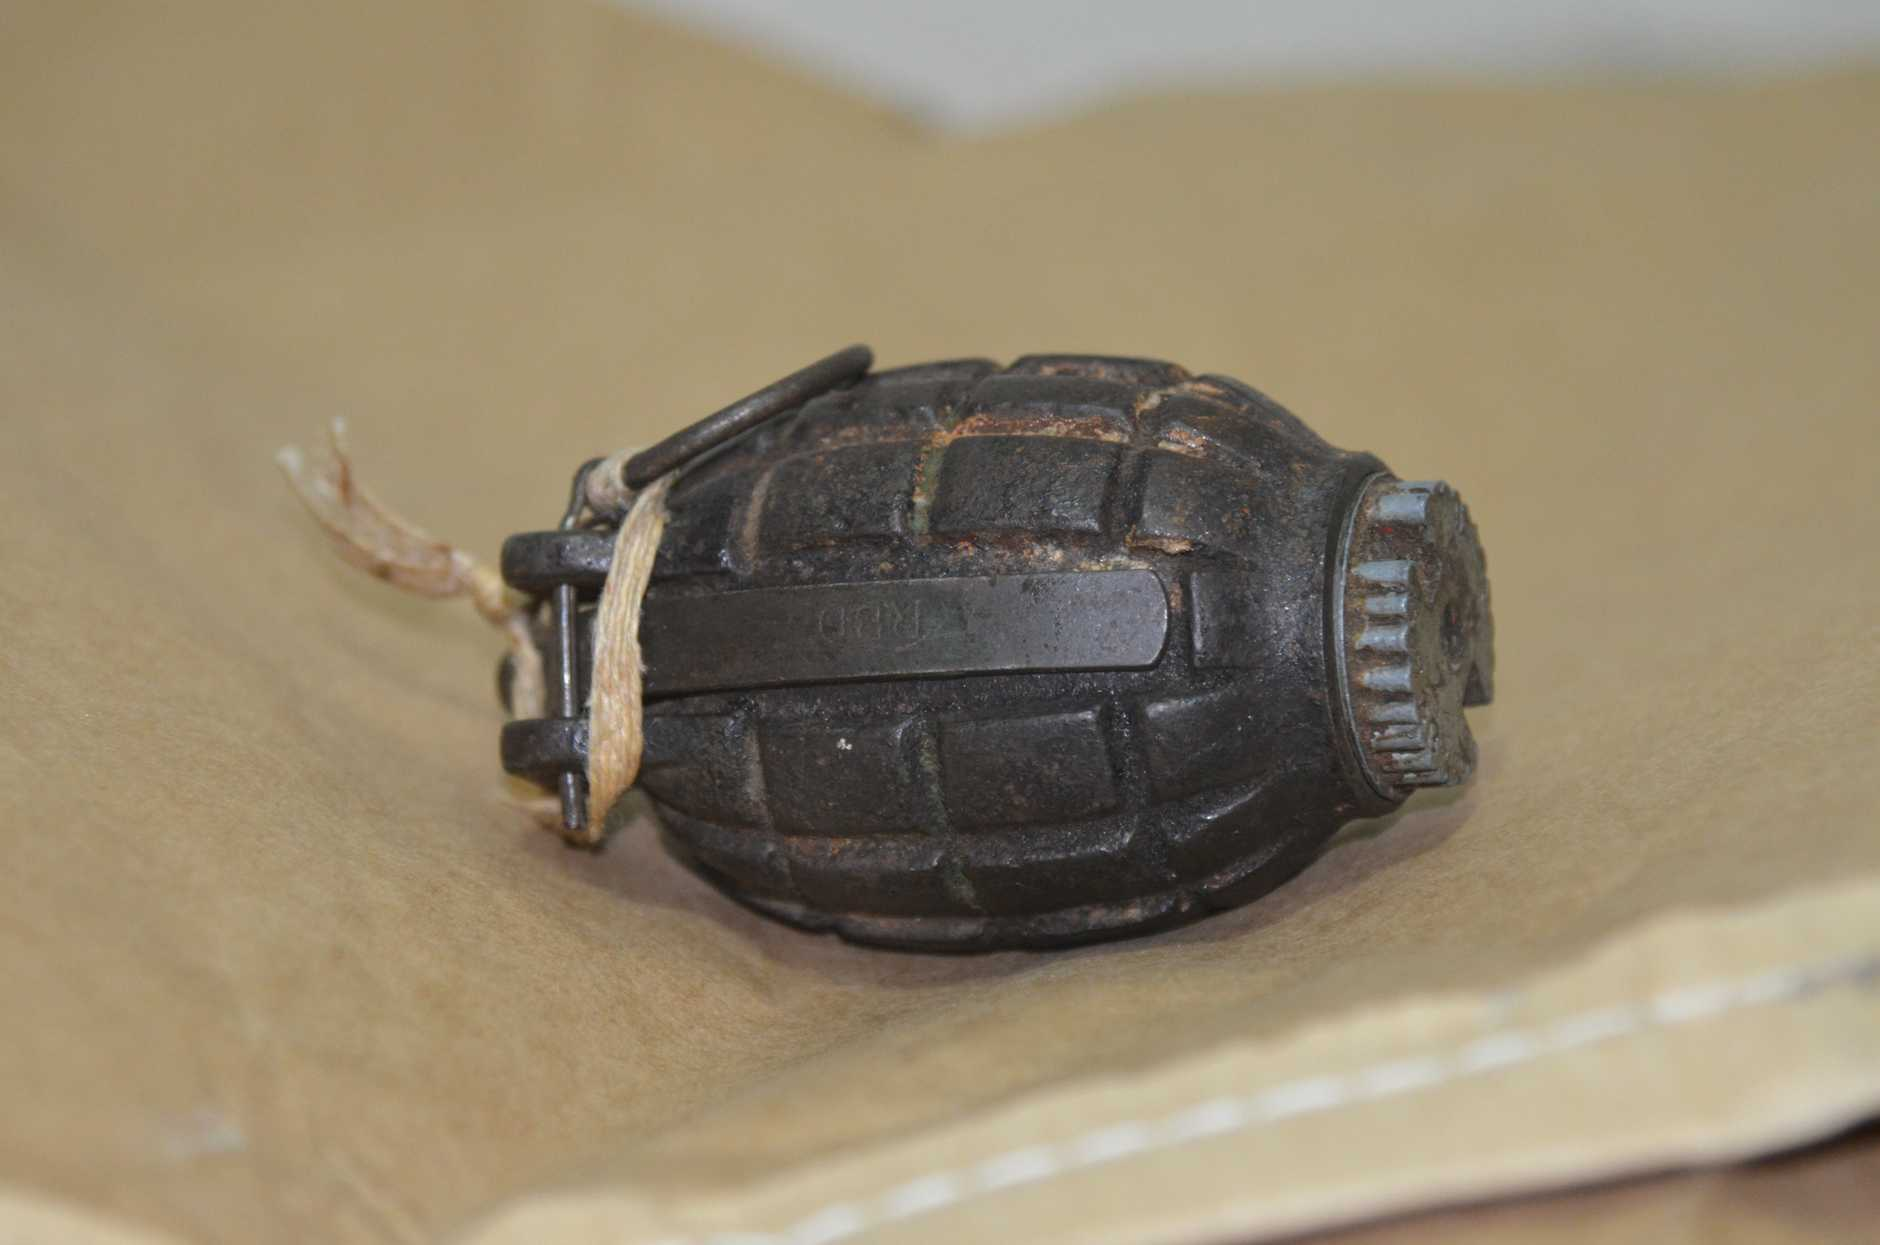 A grenade similar to that found in the Mary River this week.